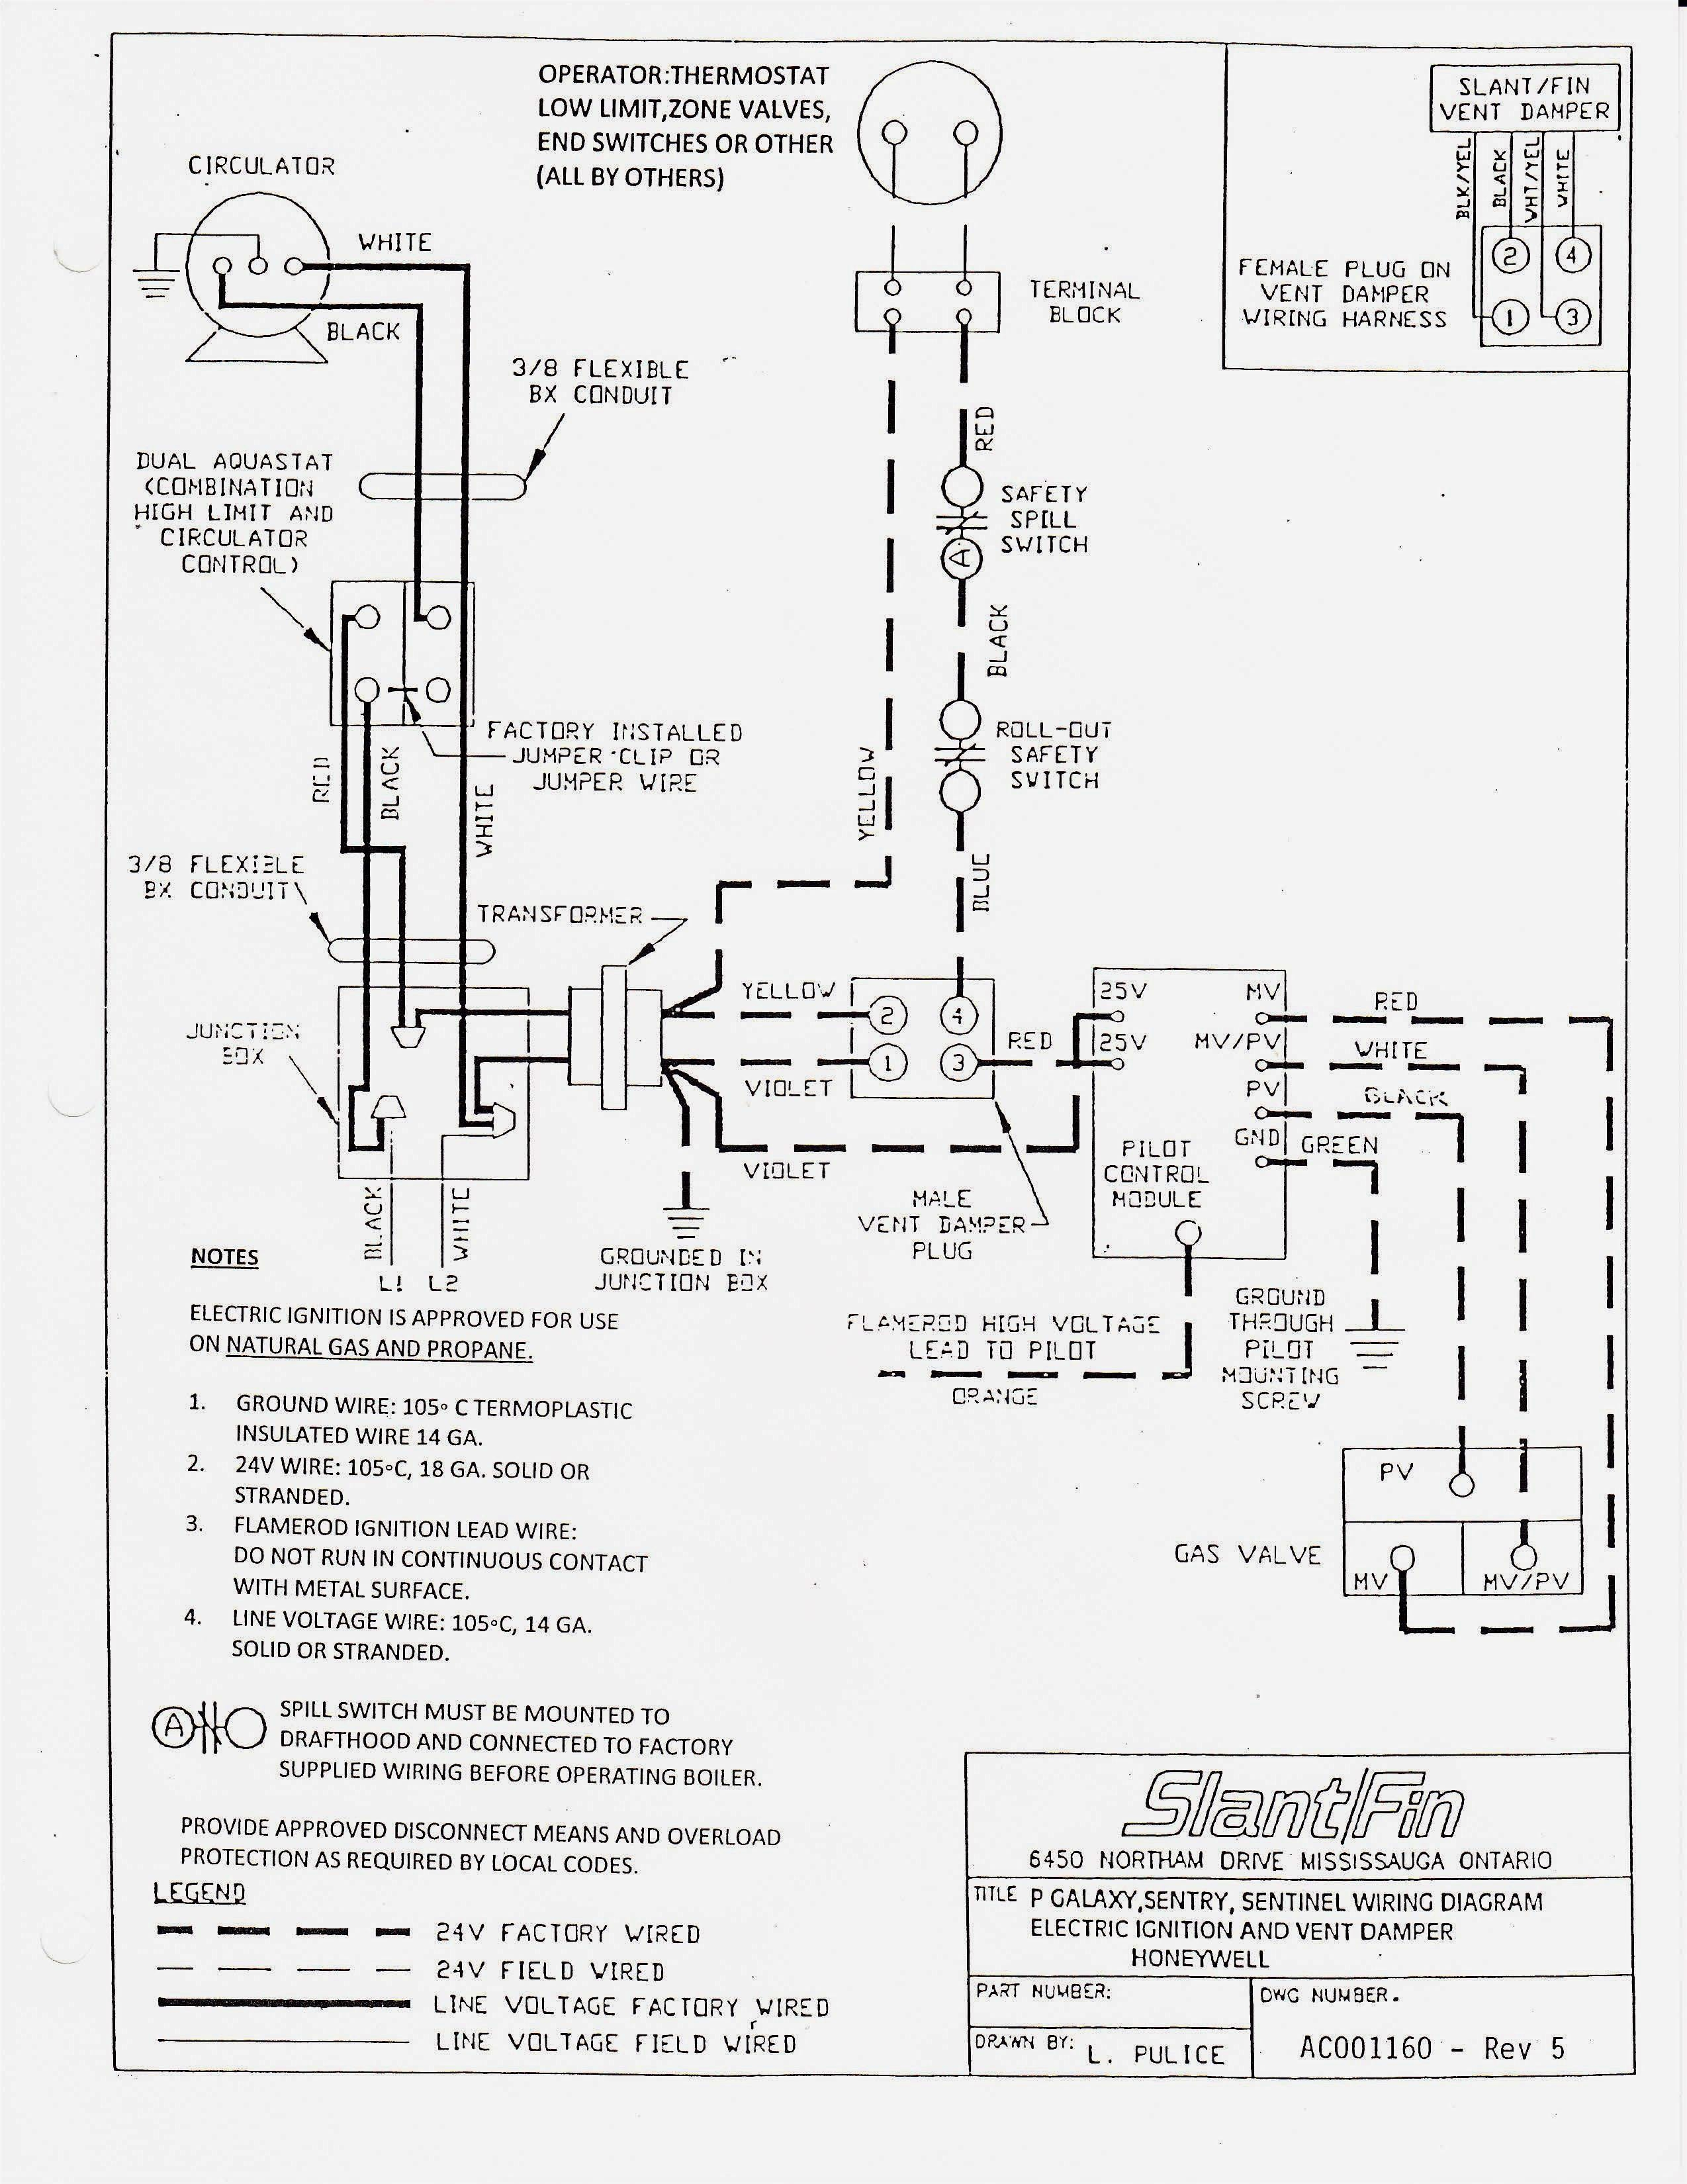 Limit Switch Wiring Diagram Awesome Honeywell Fan Limit Switch Wiring Diagram Diagram Of Limit Switch Wiring Diagram